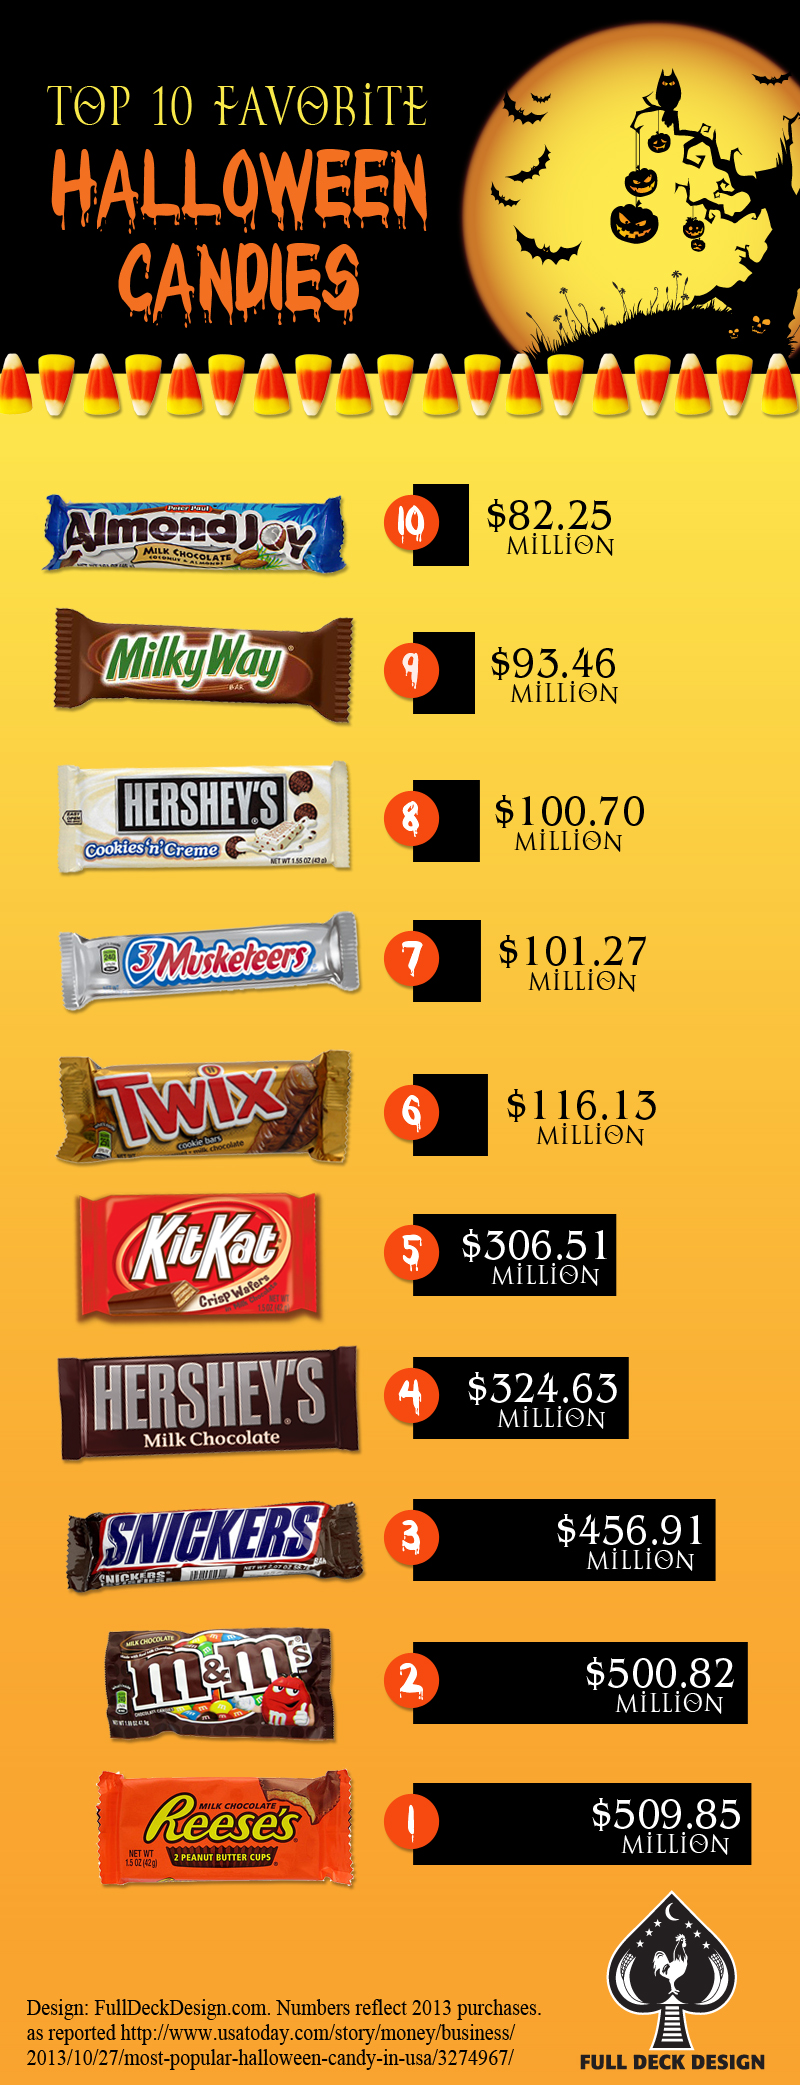 infographic showing Top 10 Halloween Candies: Almond Joy, Milky Way, Hershey's, 3 Musketeers, Twix, Kit Kat, Hershey,s milk chocolate, Snickers, M&M's Reese's